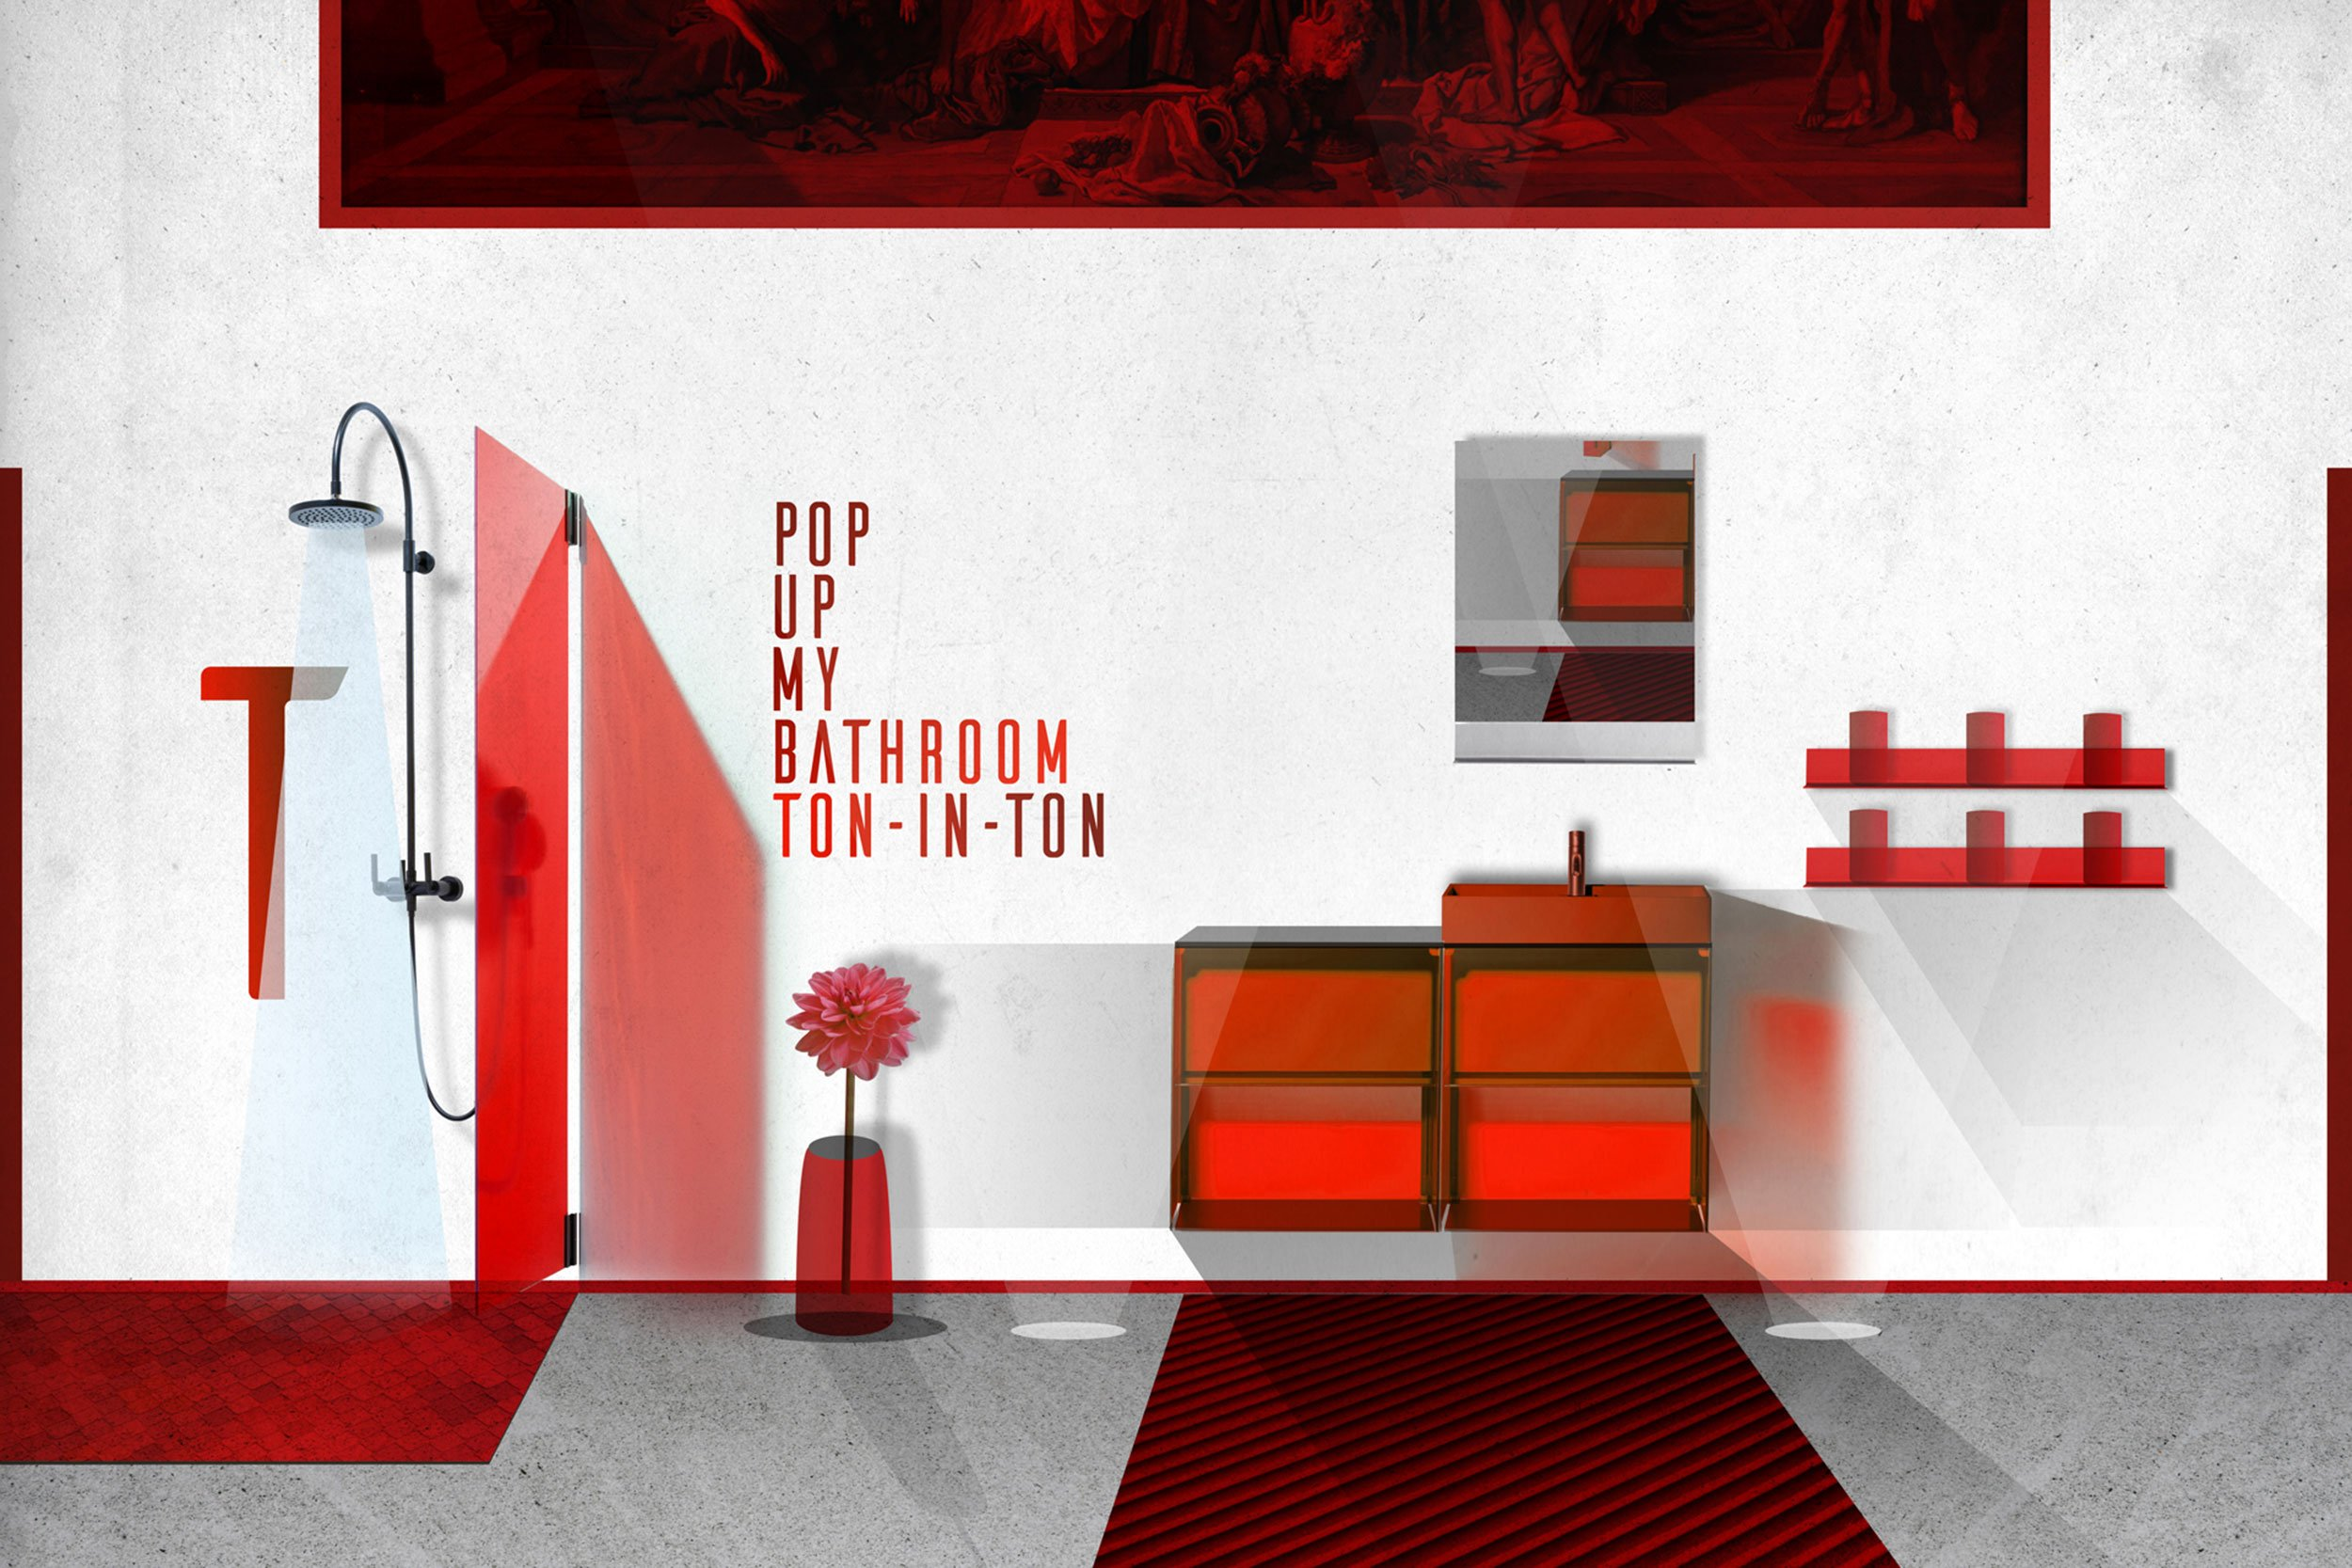 https://farconsulting.de/wp-content/uploads/2020/03/07_Pop-up-my-Bathroom-Illustrationen.jpg